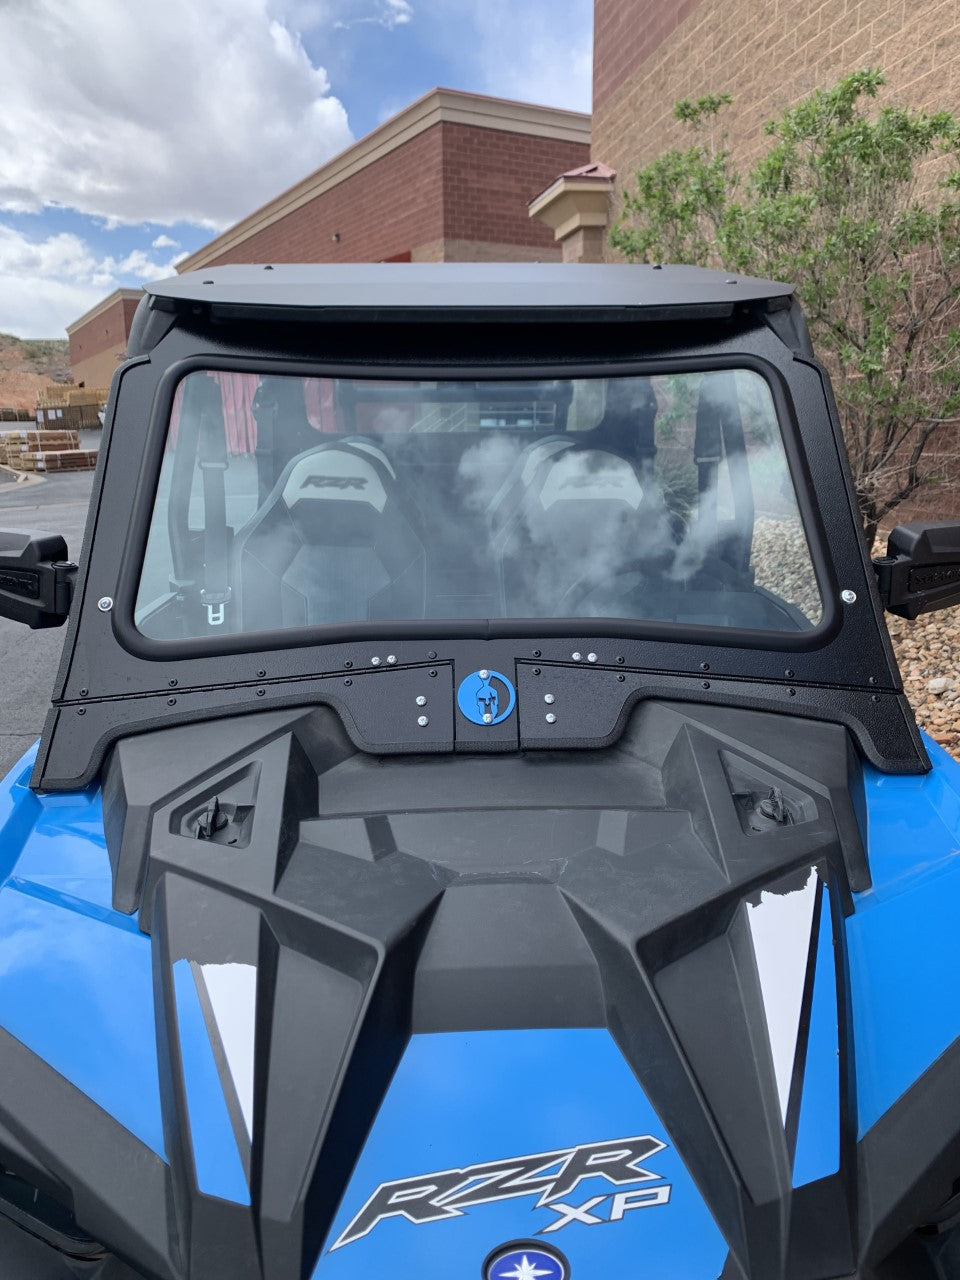 POLARIS RZR 1000XP/TURBO 2019+ FRONT WINDSHIELD